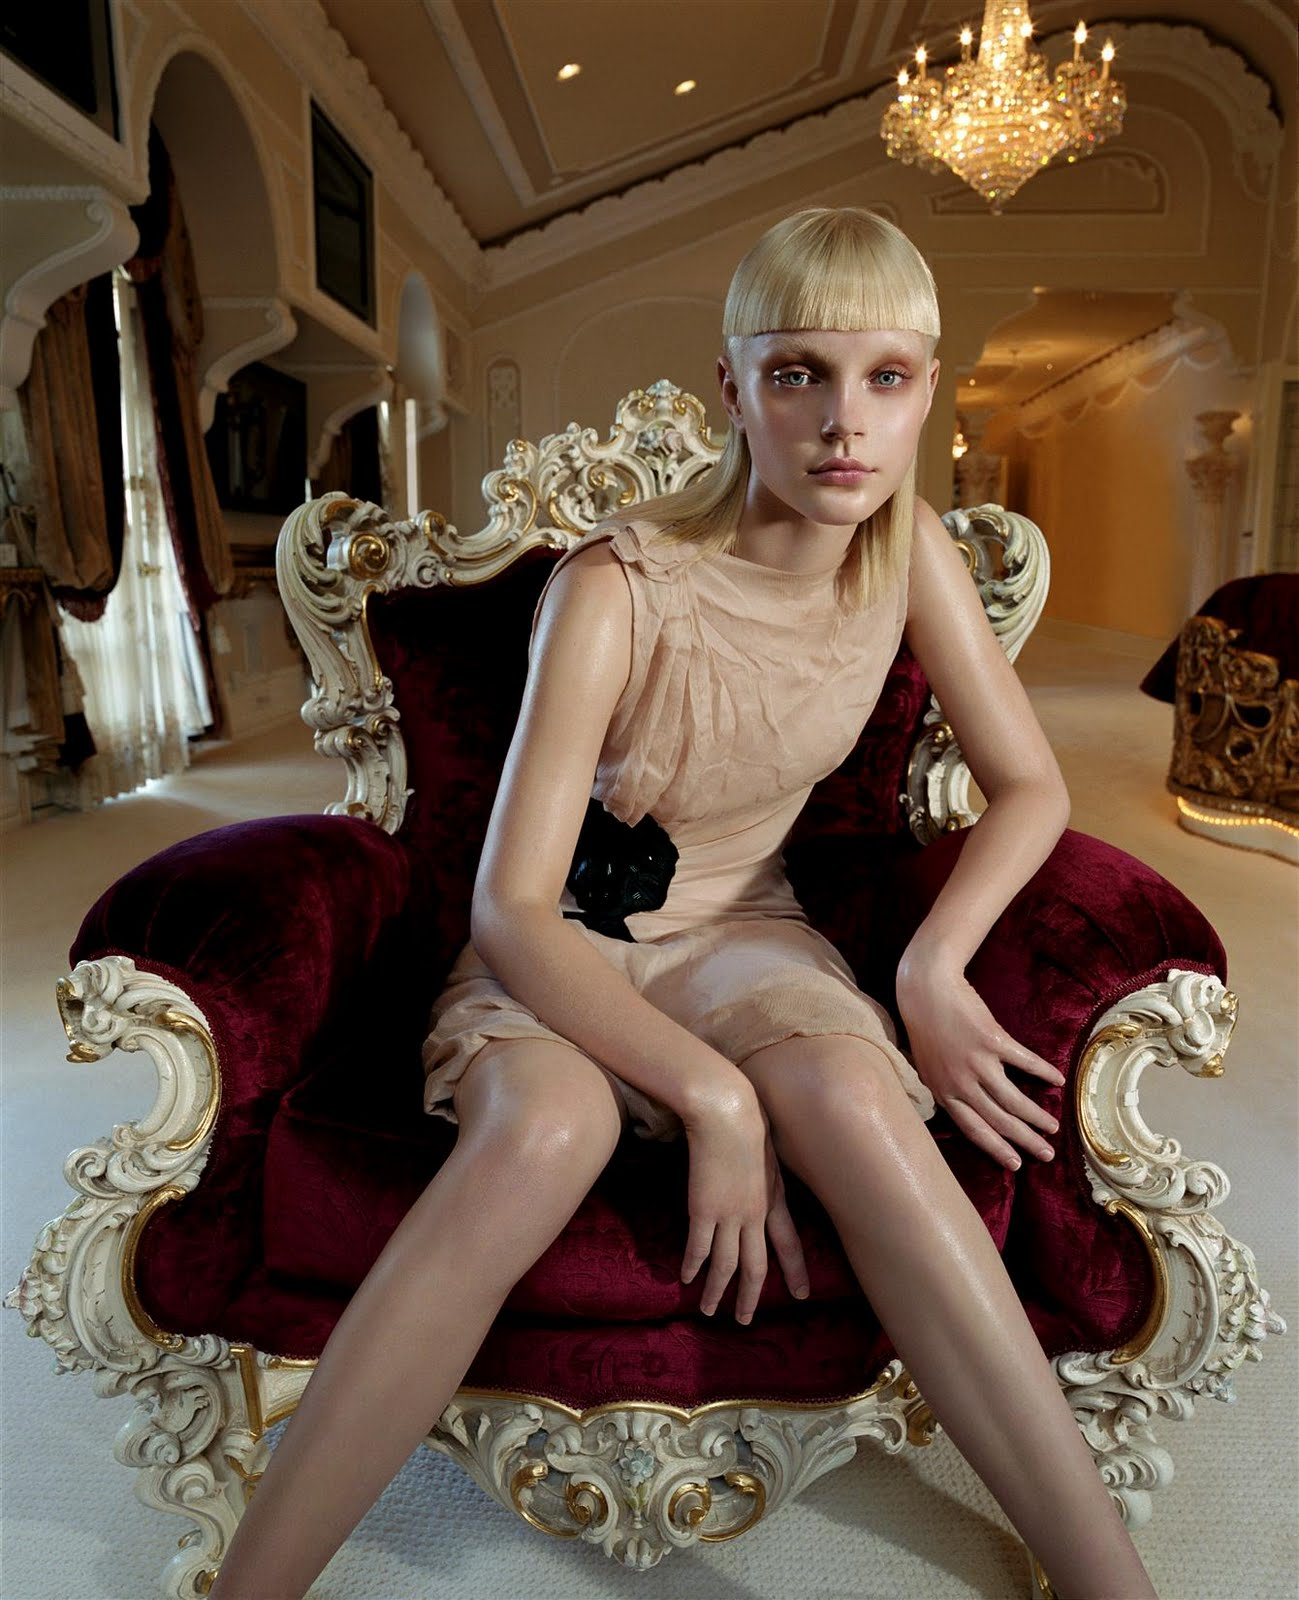 Steven Meisel for Vogue Italia Sep 2003 featuring Jessica Stam